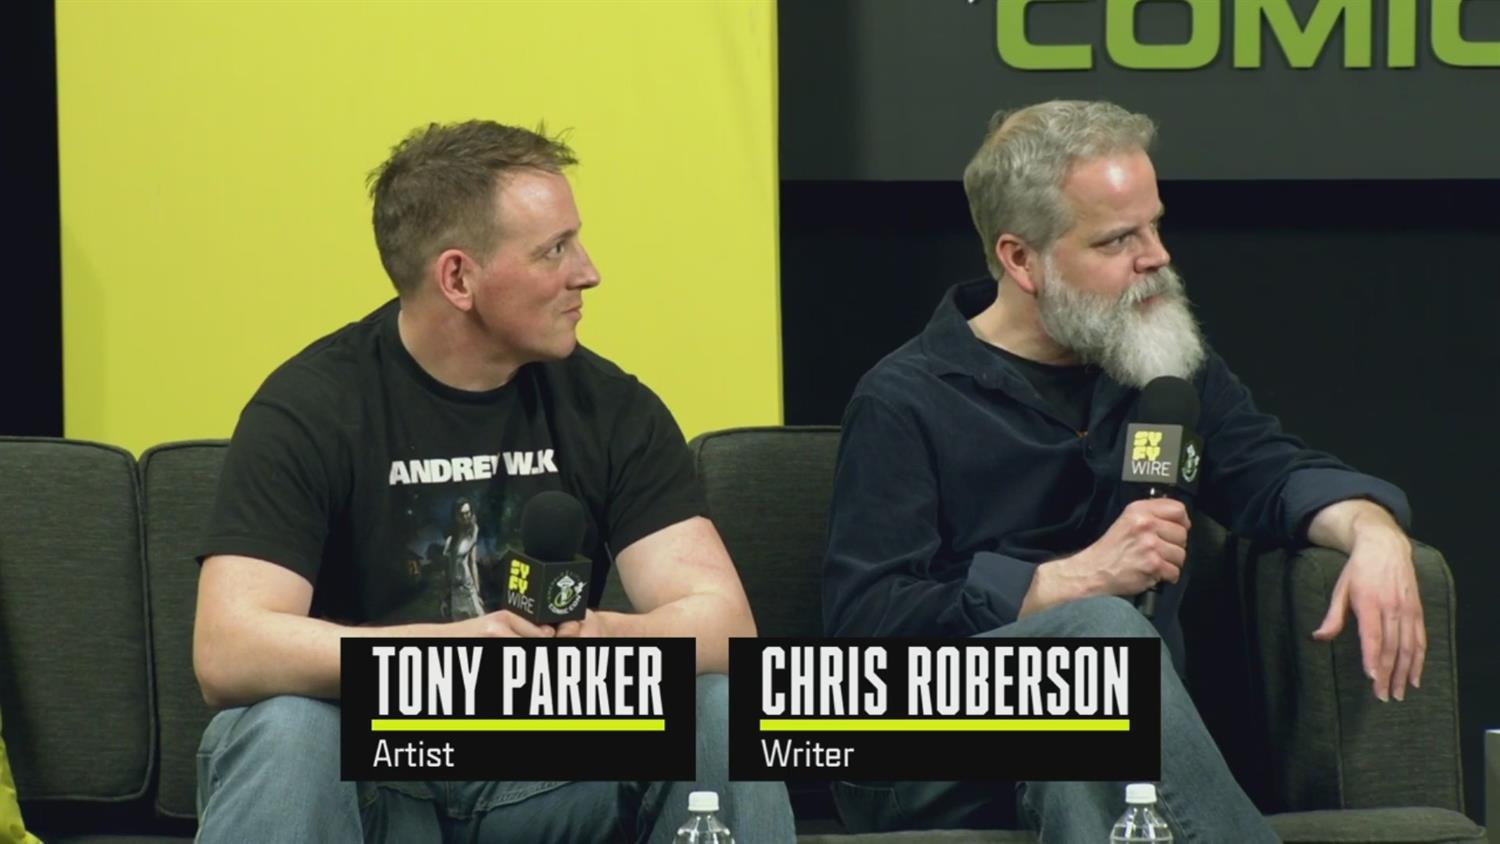 Chris Roberson And Tony Parker On 'God Of War' (ECCC 2019)